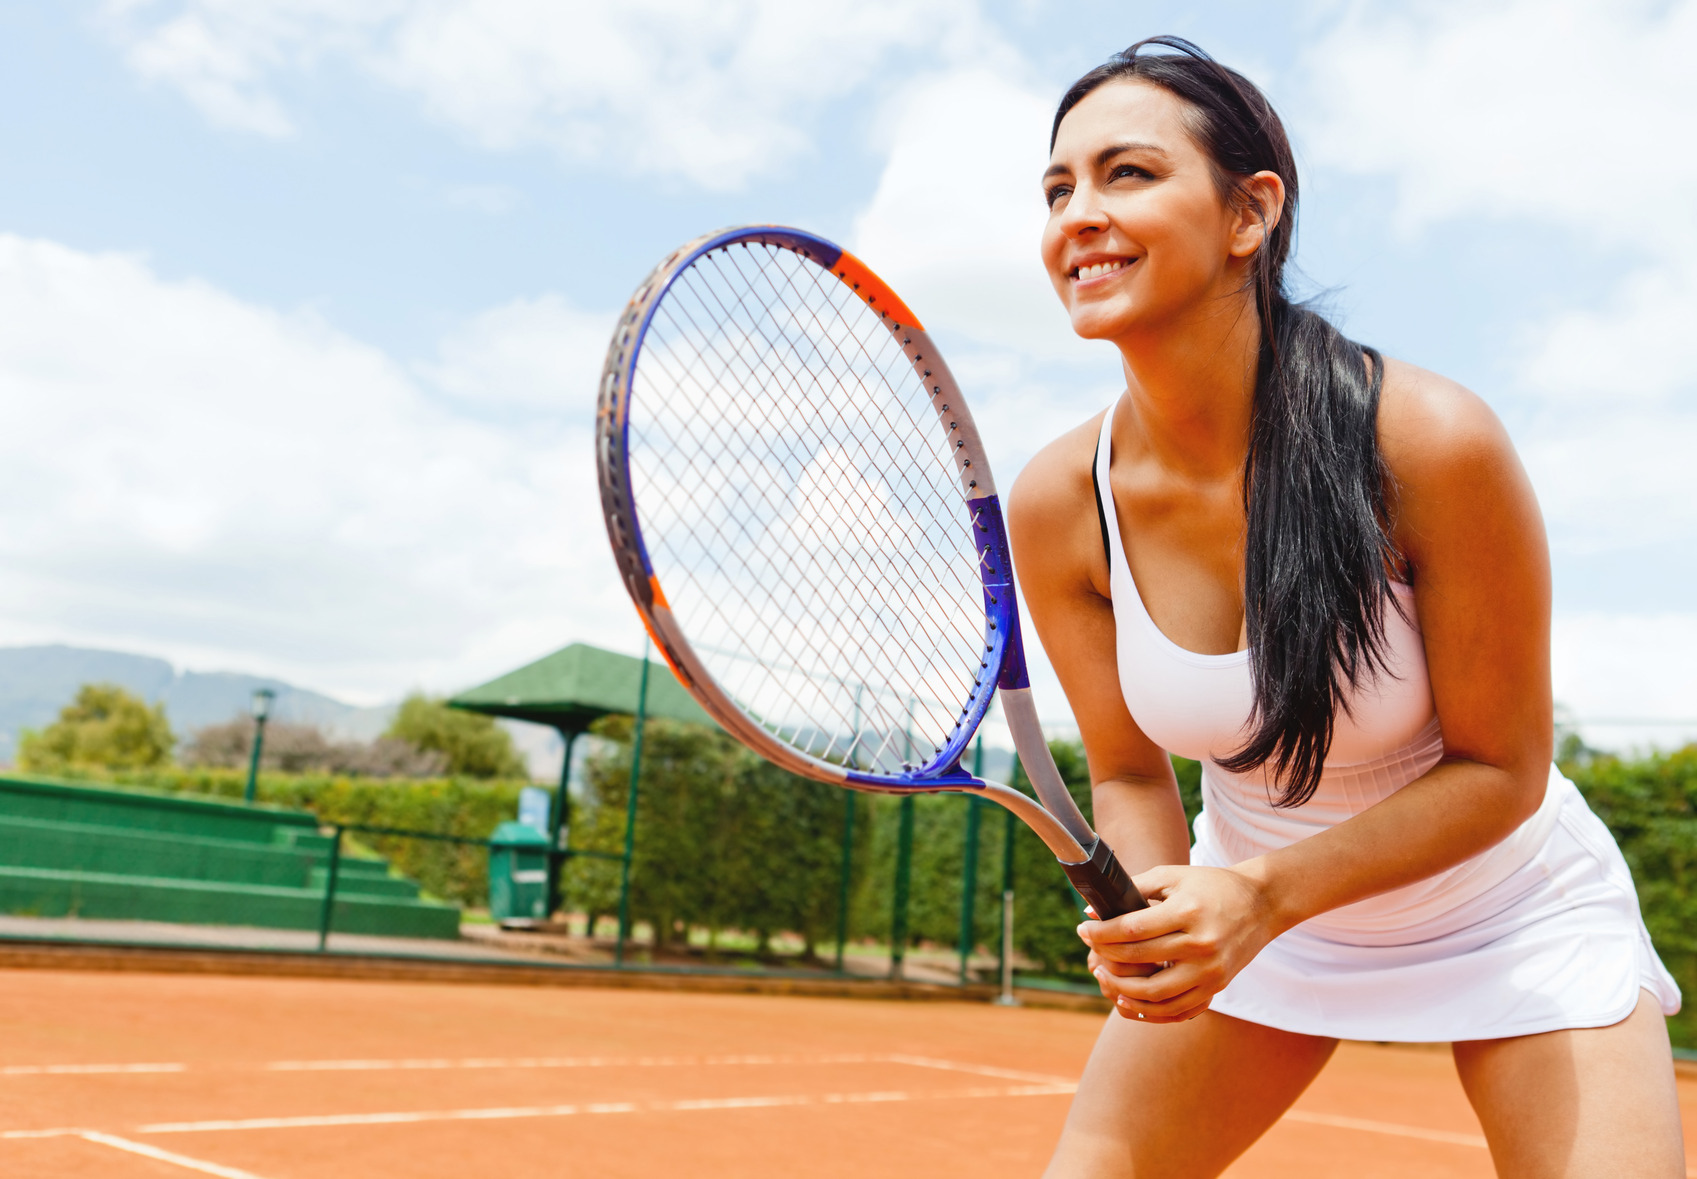 cardio-play-tennis-trend-junky